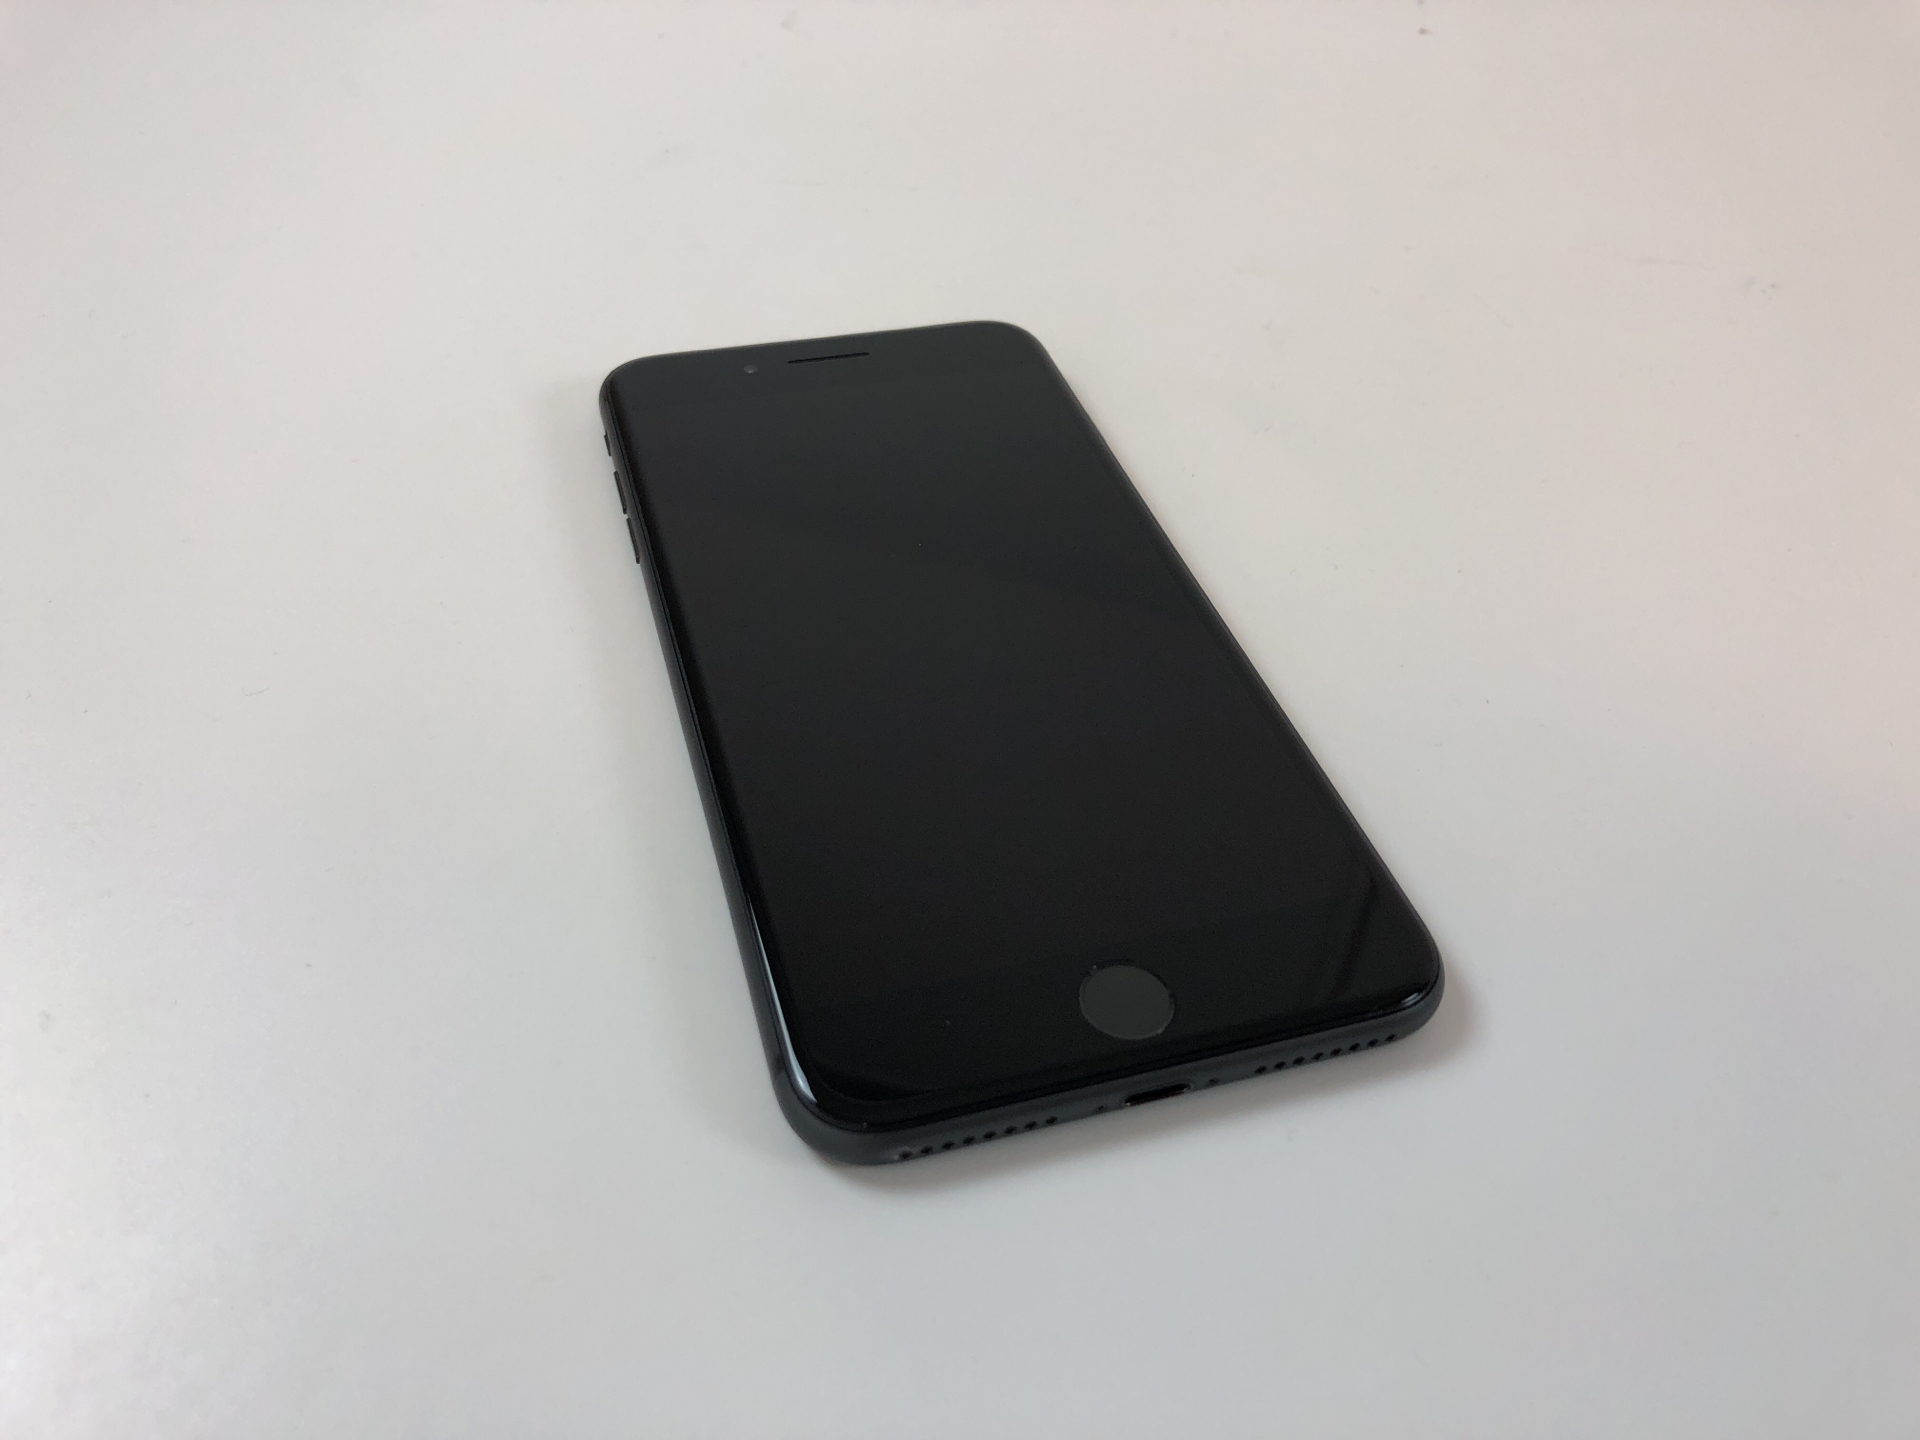 iPhone 8 Plus 64GB, 64GB, Space Gray, Afbeelding 1